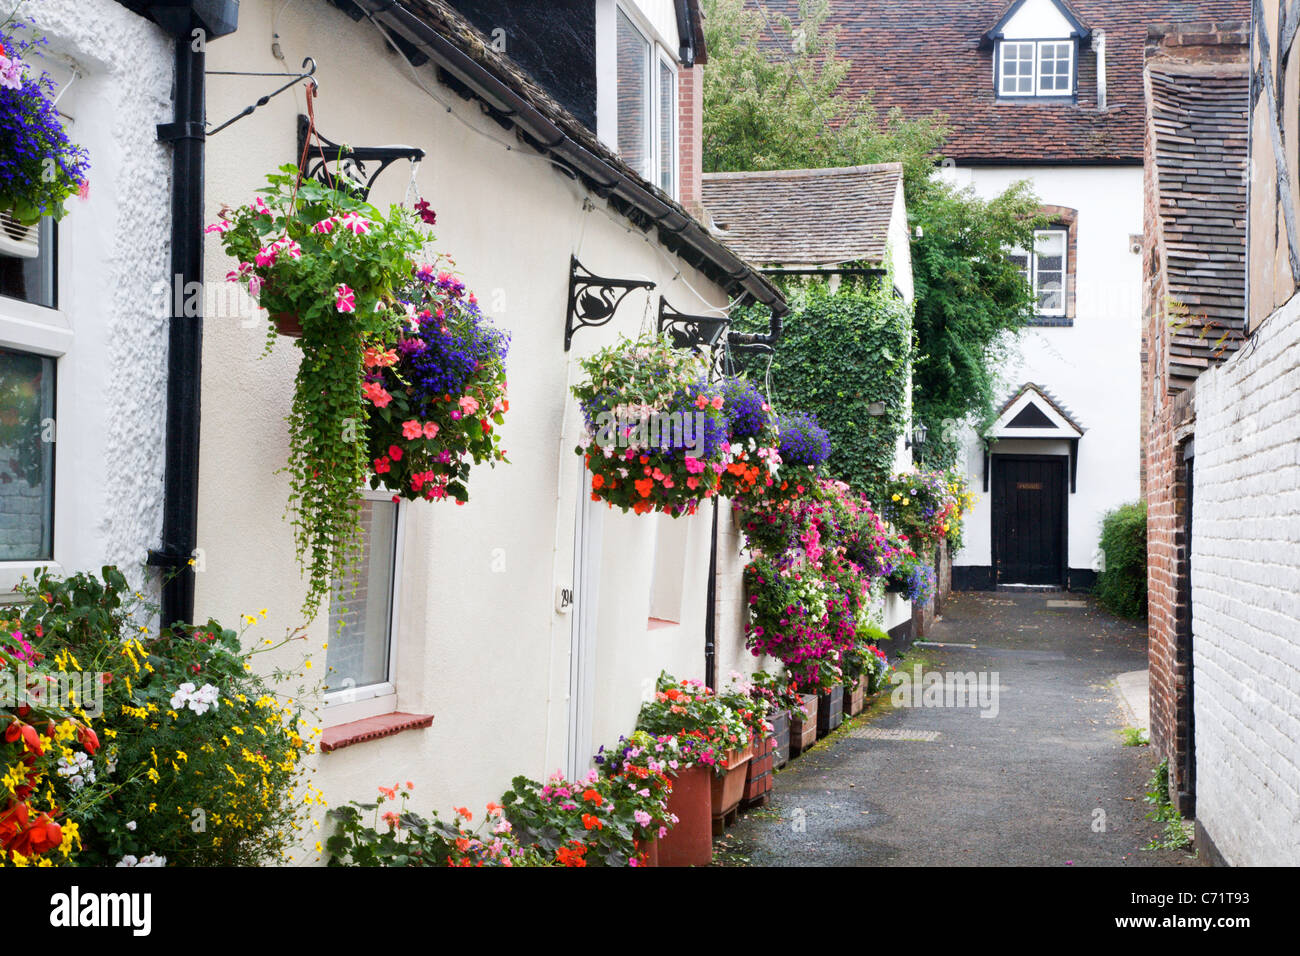 Hanging Baskets in an Alleyway Bridgnorth Shropshire England - Stock Image